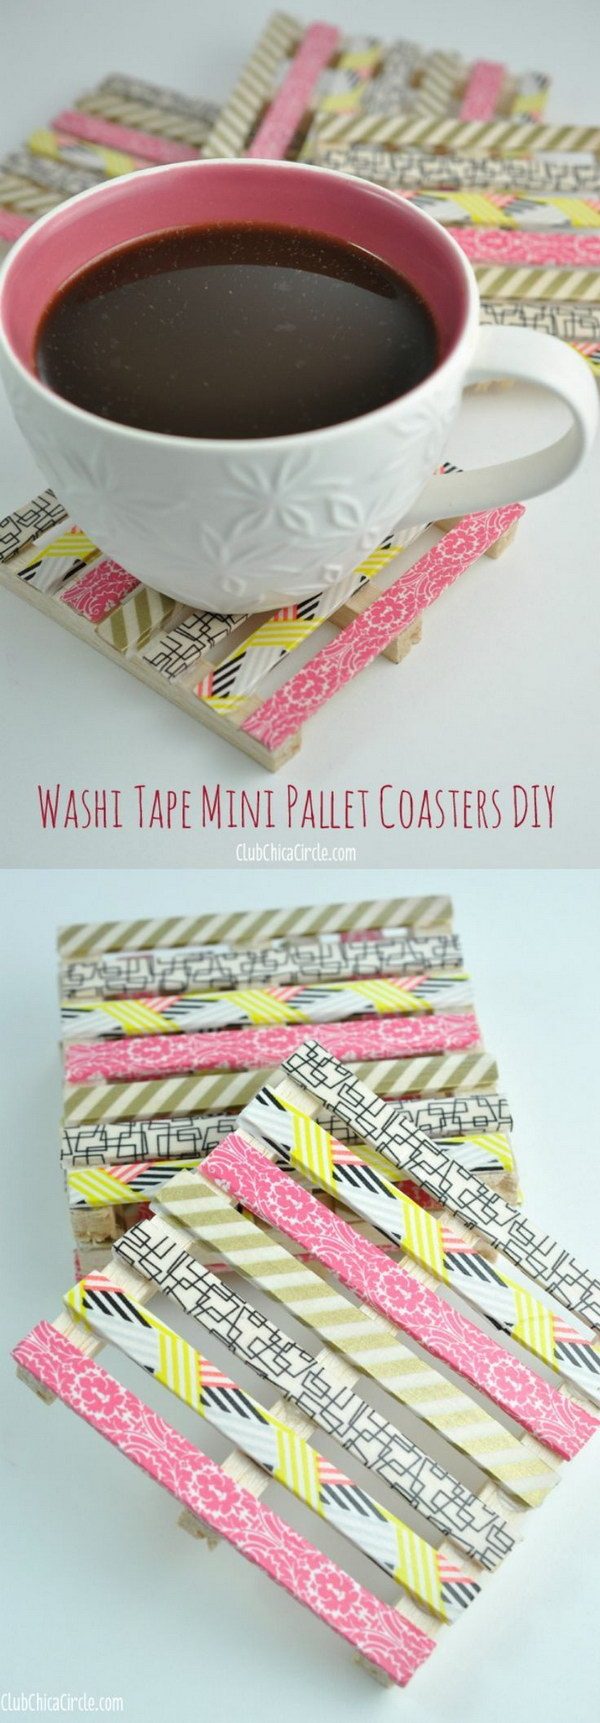 20 hostess gift ideas - 20 Perfect DIY Hostess Gift Ideas & Tutorials